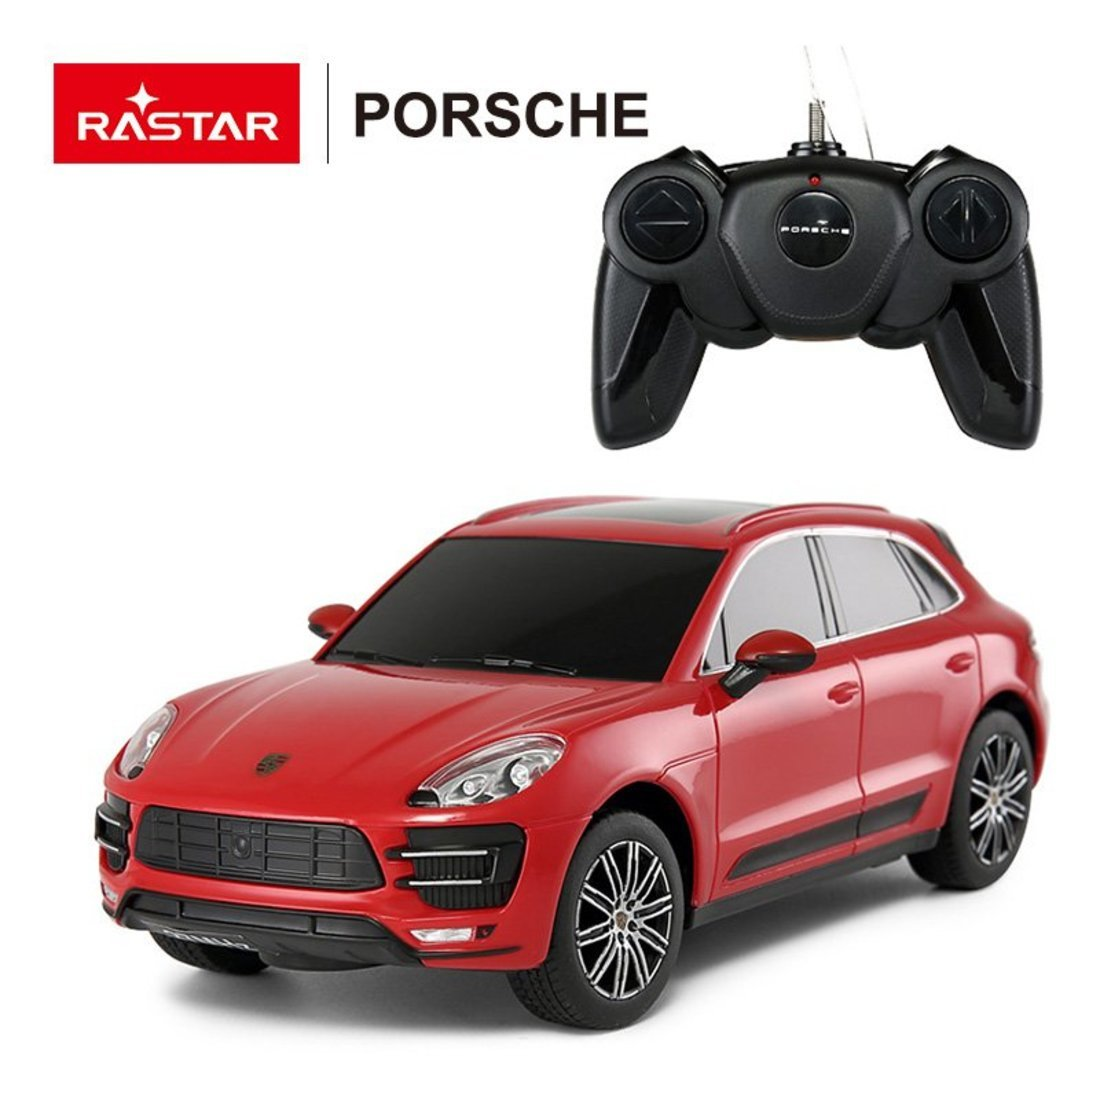 Машина р/у 1:24 Porsche Macan Turbo Цвет Красный